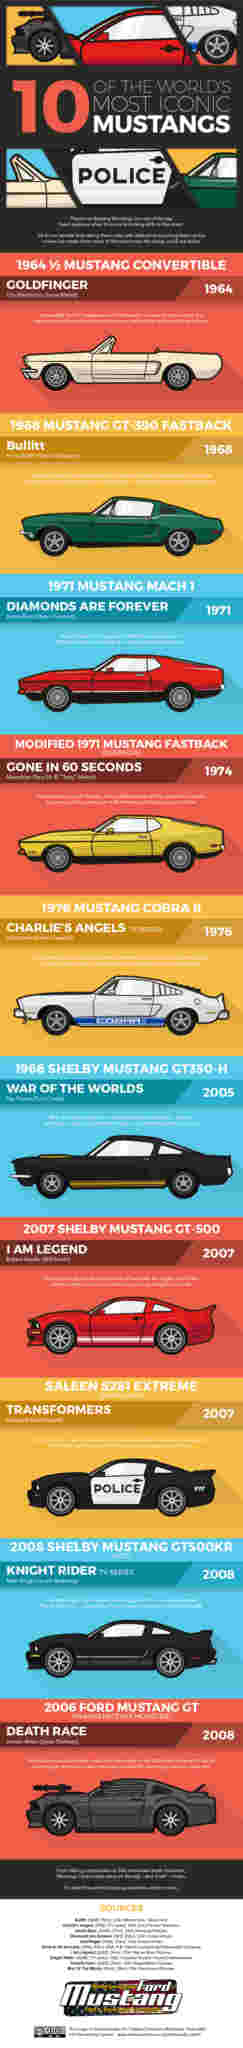 10-Of-The-World's-Most-Iconic-Mustangs